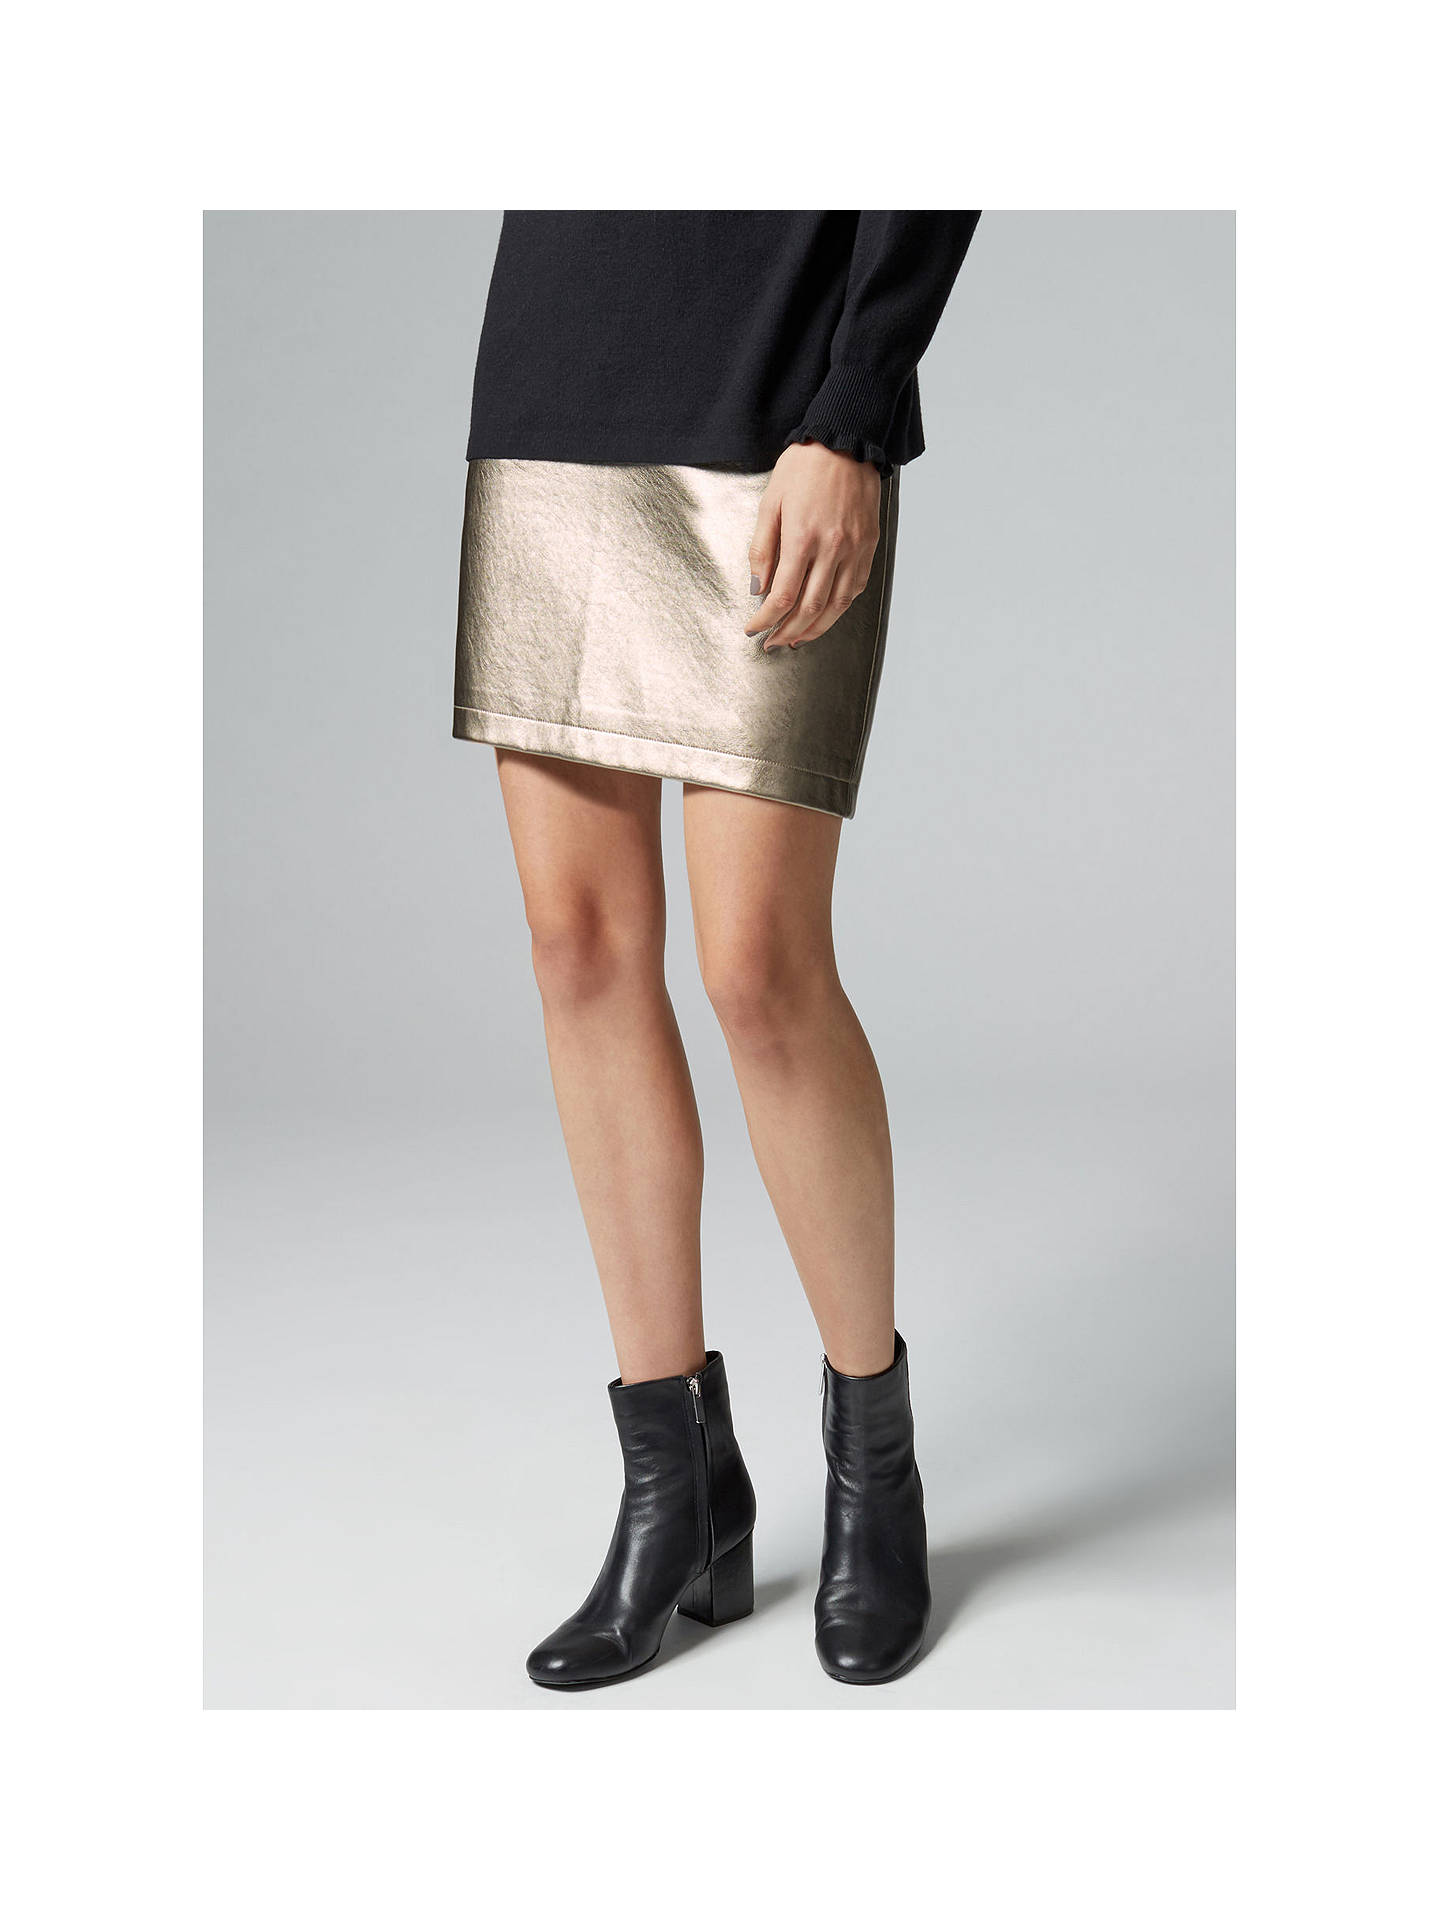 54d95253c3 ... Buy Warehouse Metallic Faux Leather Skirt, Gold, 6 Online at  johnlewis.com ...